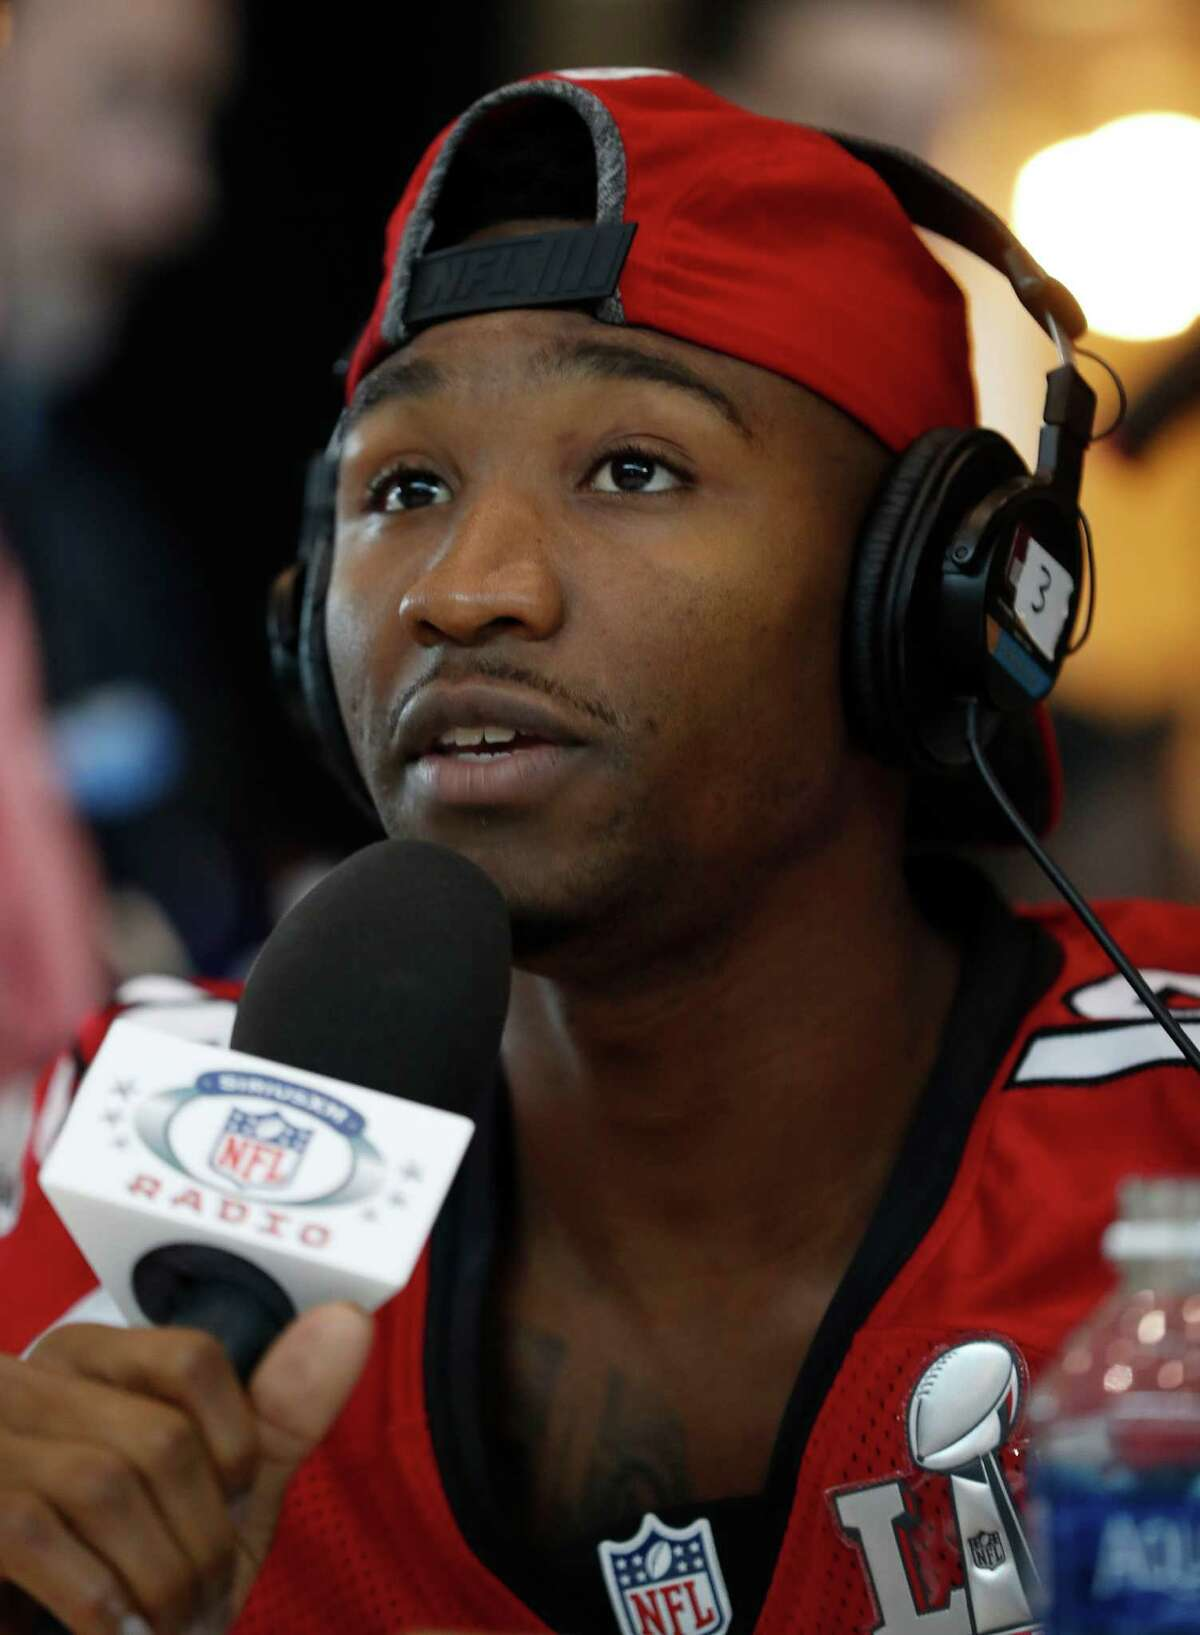 Atlanta Falcons wide receiver Taylor Gabriel (18) talks to a radio show during the Falcons media session at the Memorial City Mall Ice Arena, Wednesday, February 1, 2017.